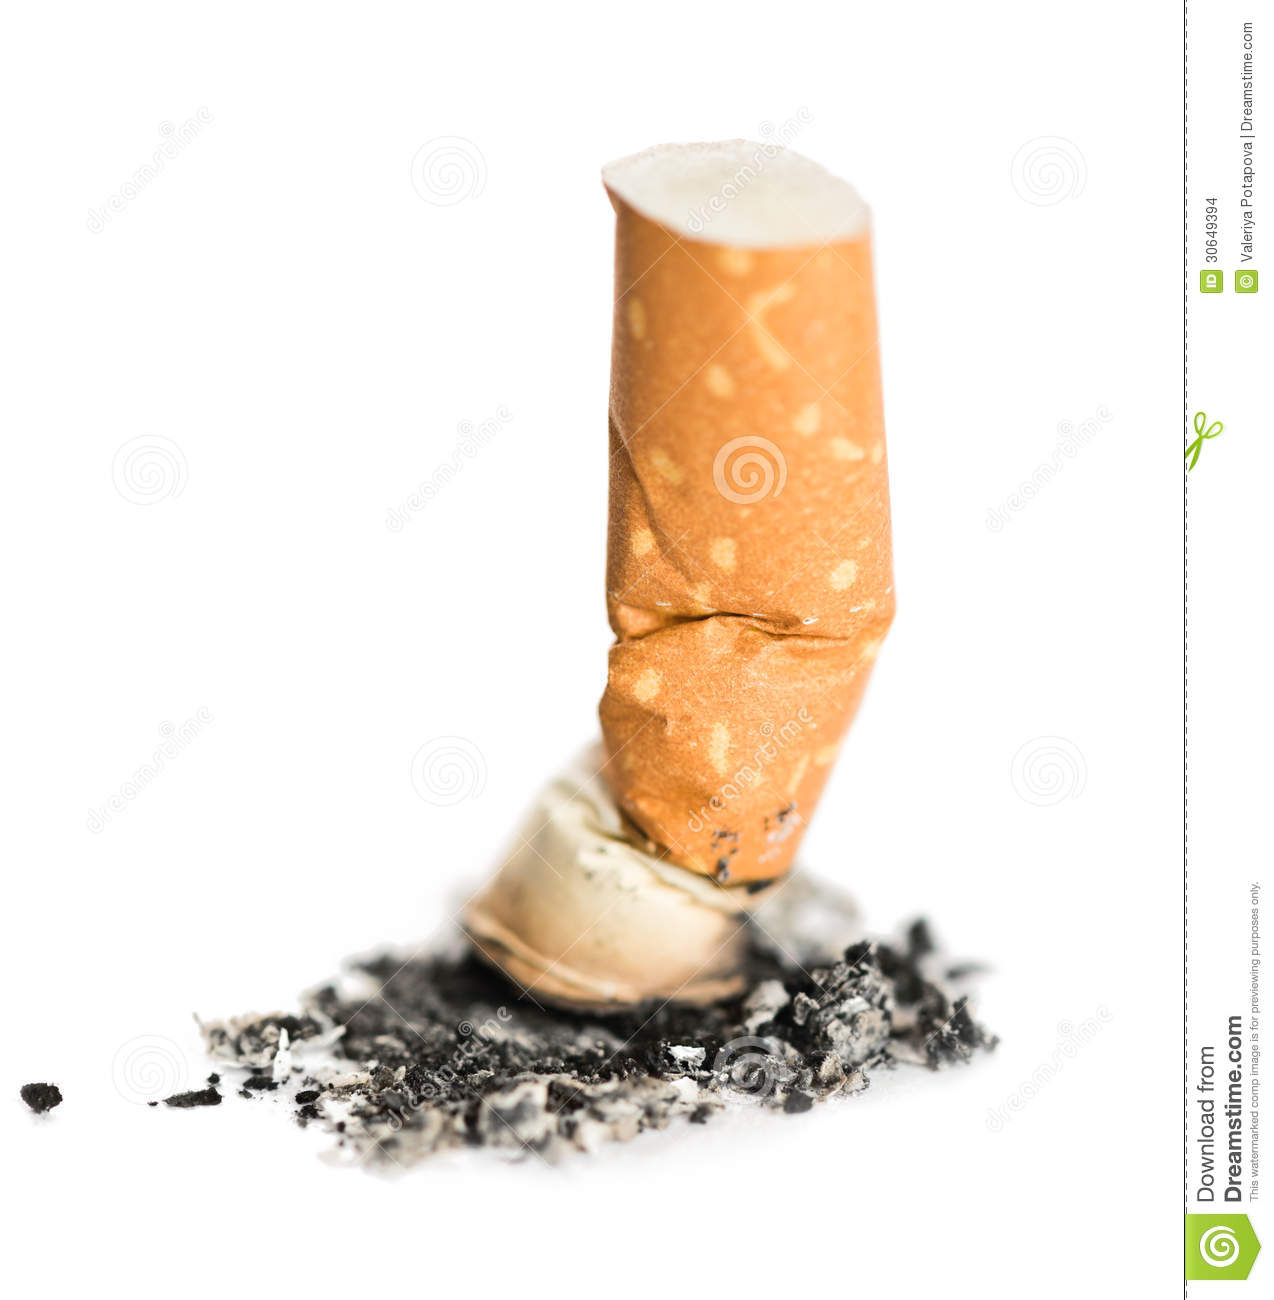 Download Cigarette stock photo. Image of nicotine, broken, object - 30649394